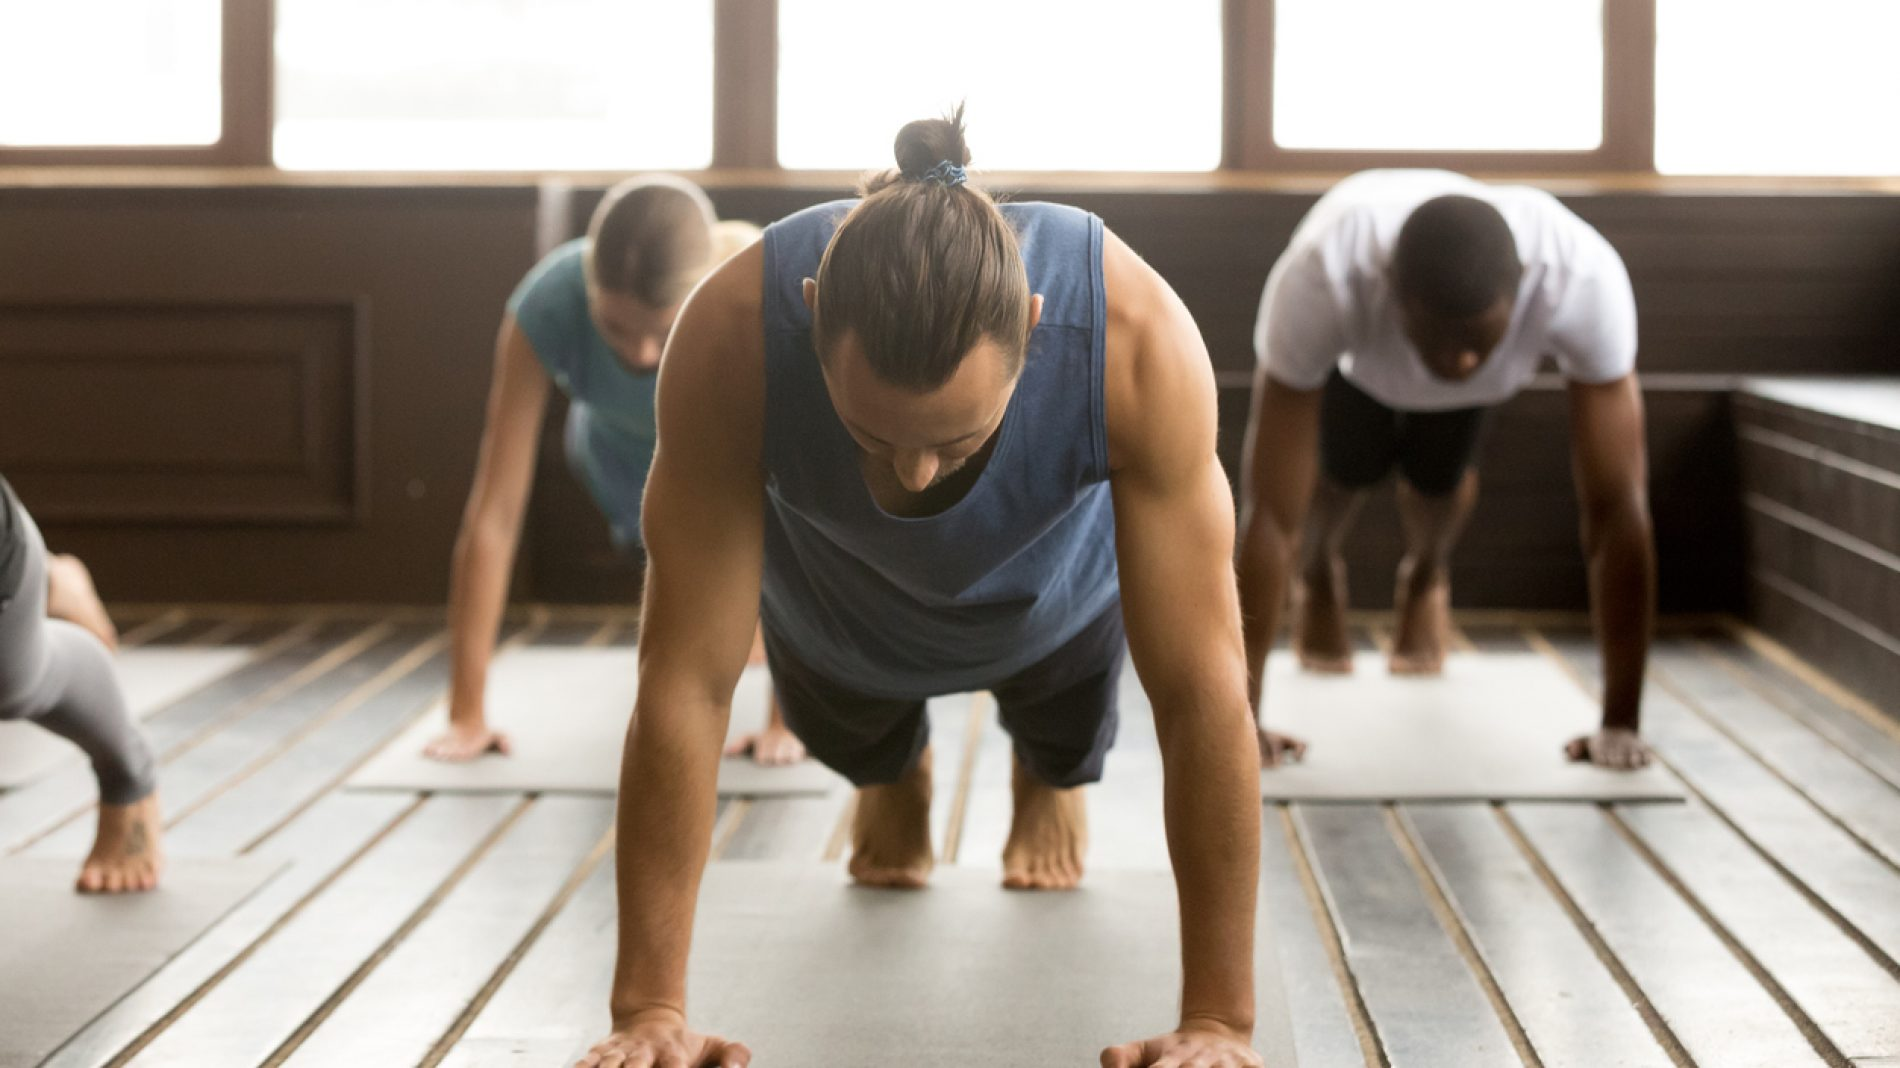 Group of sporty people in Plank pose